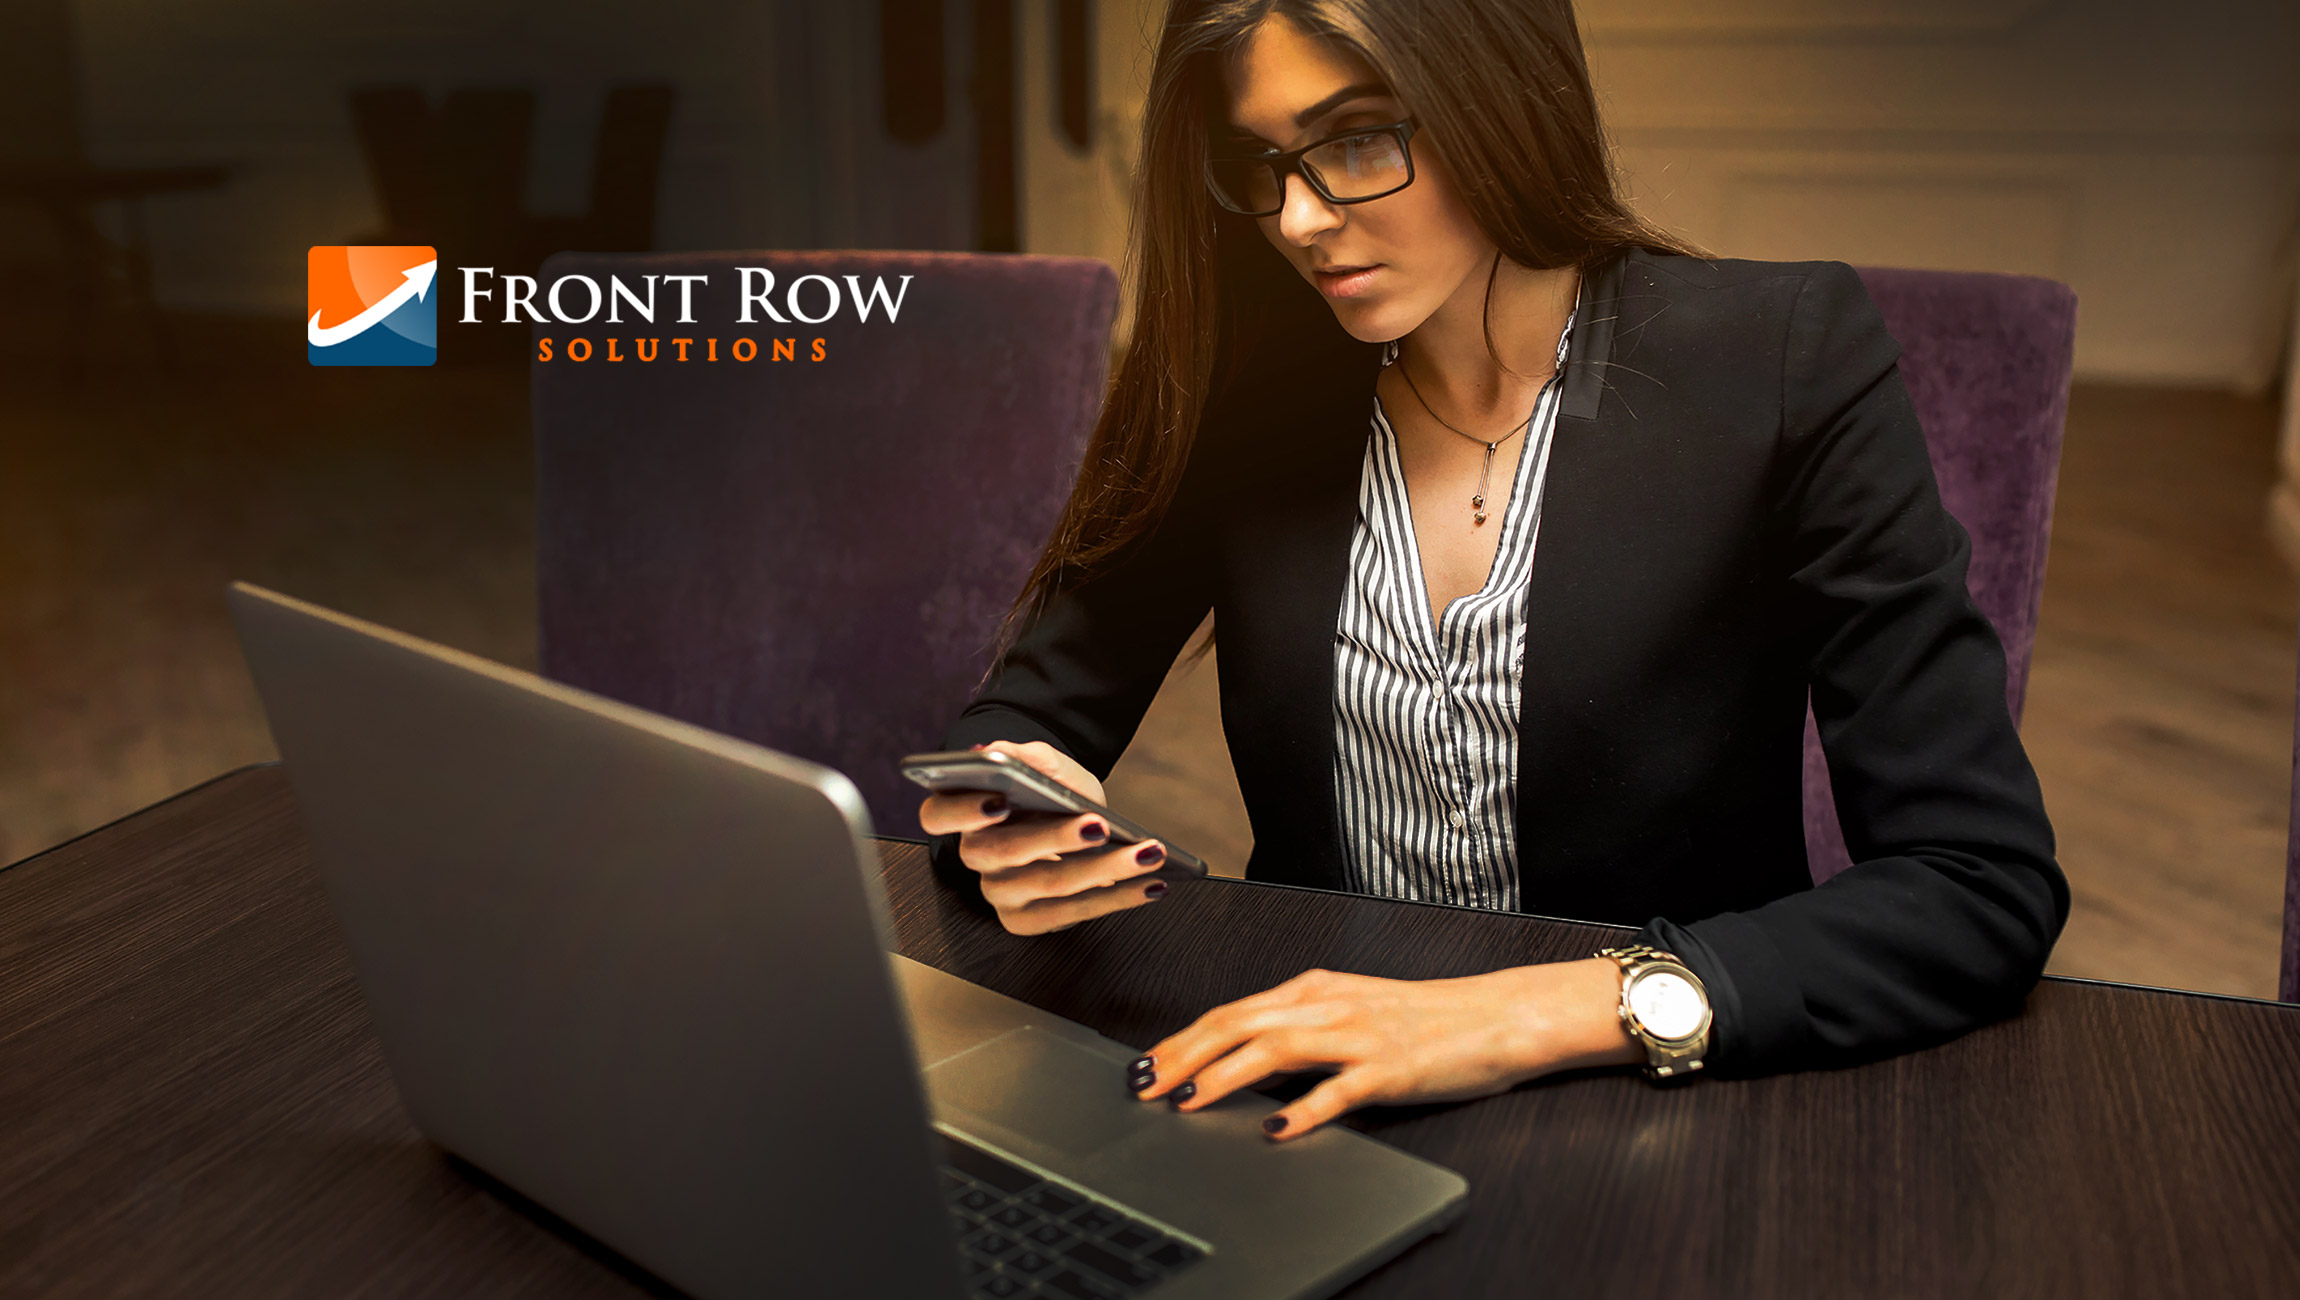 New Front Row Solutions Video Explains Real-Time Mobile CRM Platform